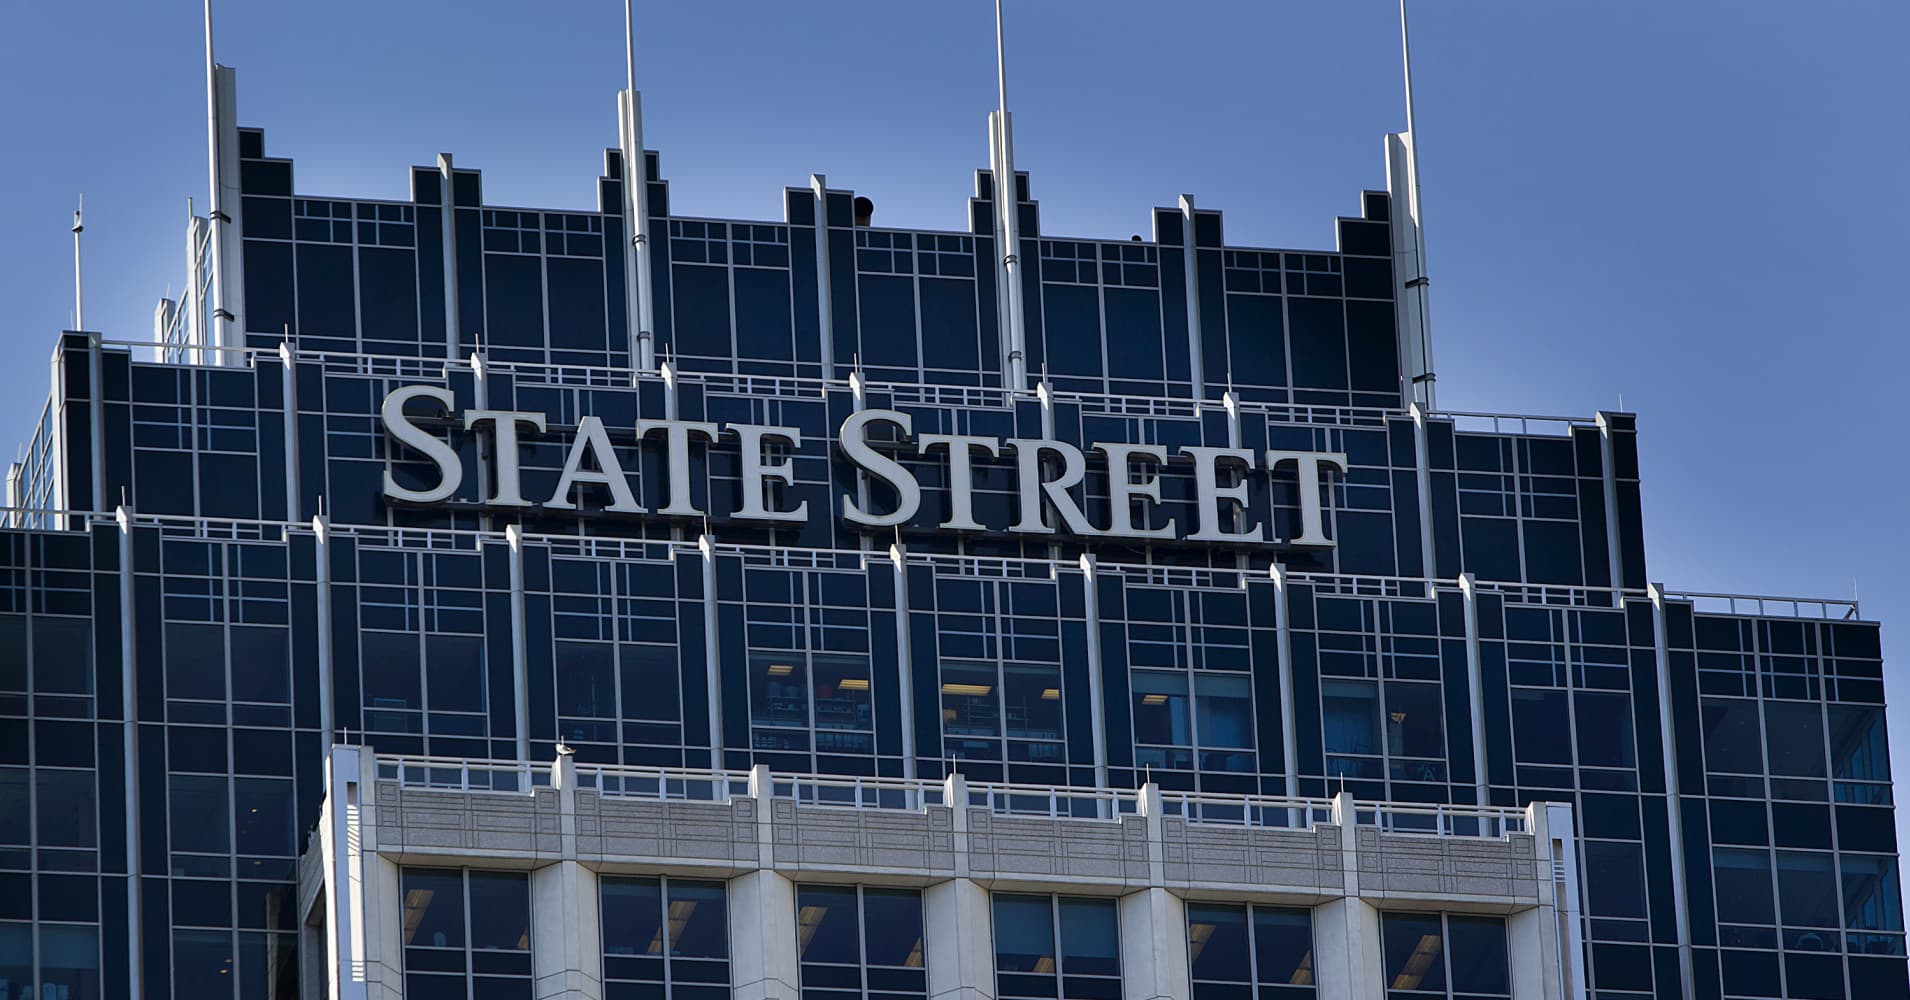 Noted banking analyst Mike Mayo warns State Street shareholders executive pay is too high